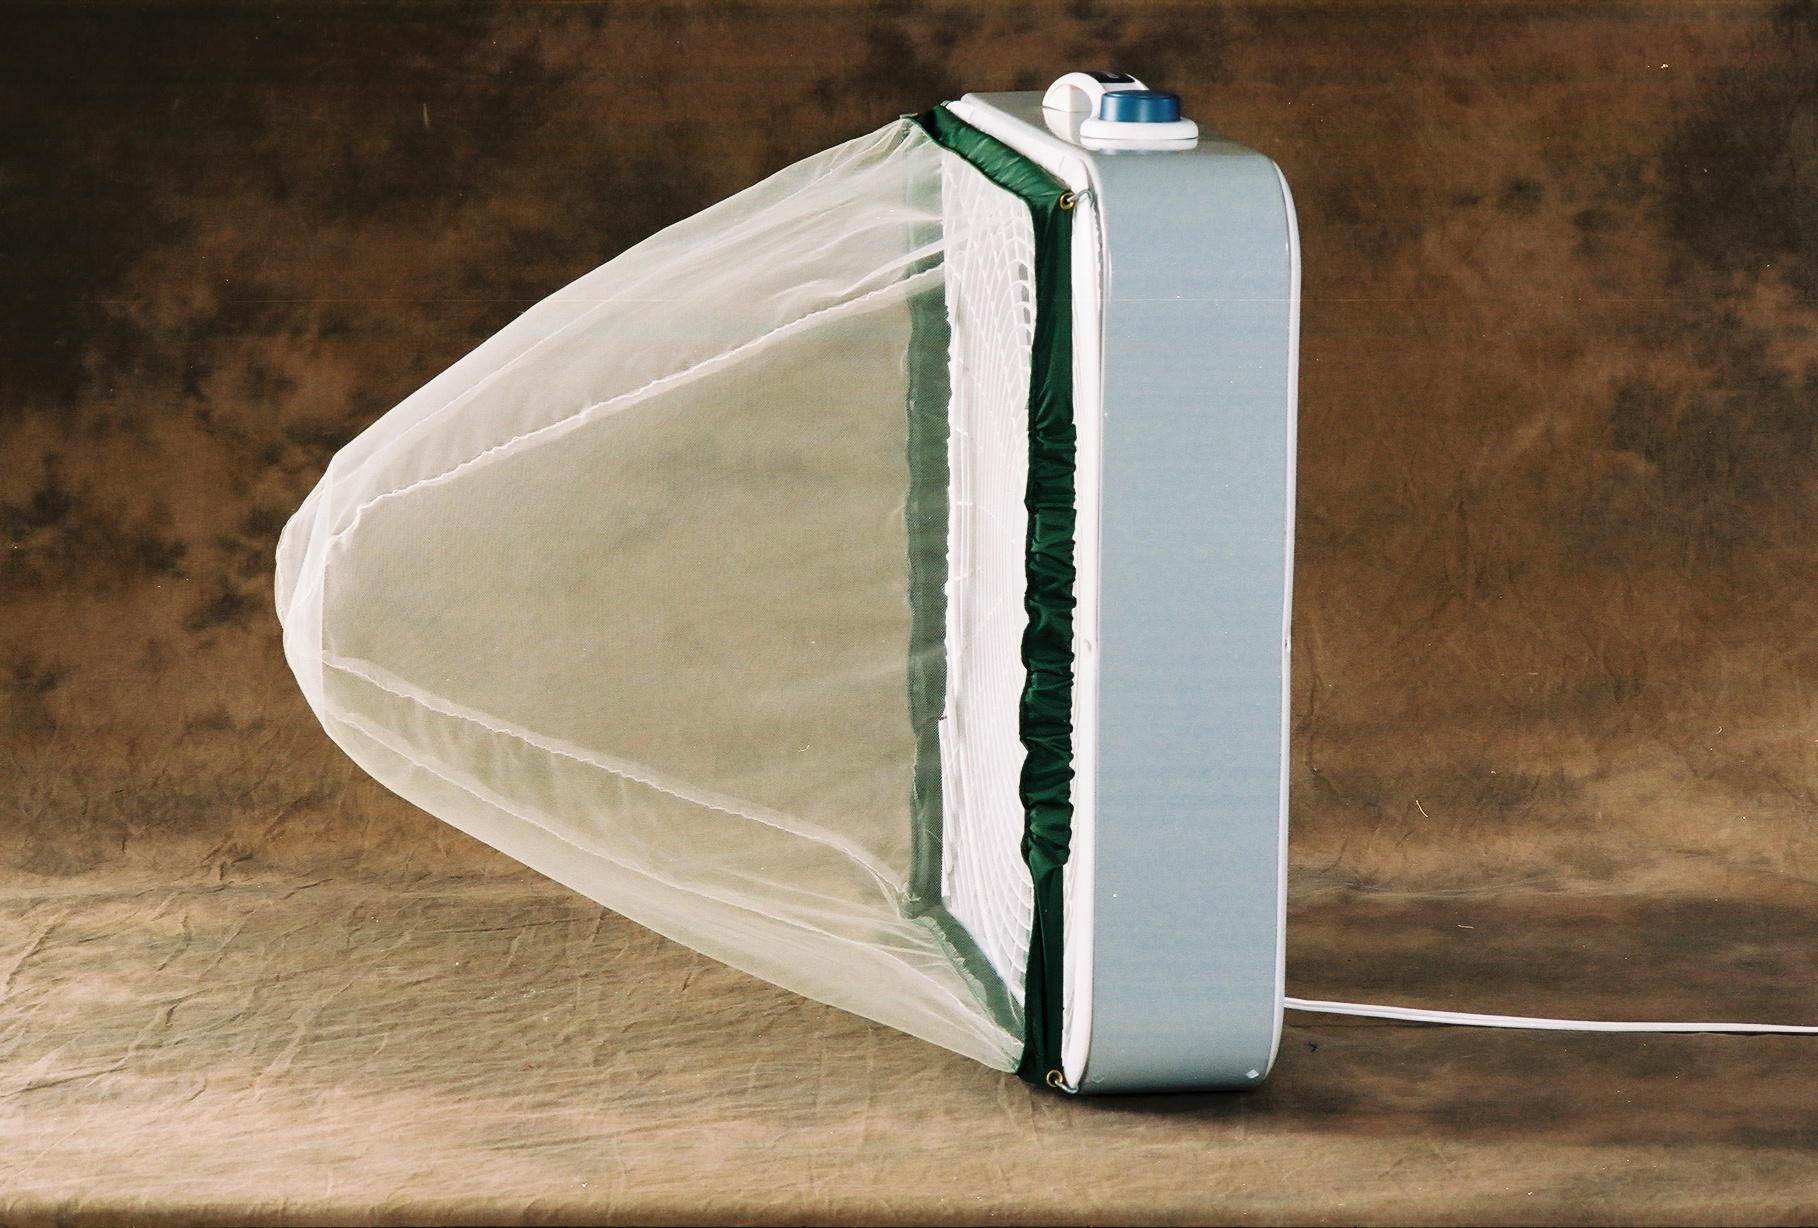 Skeeterbag on box fan